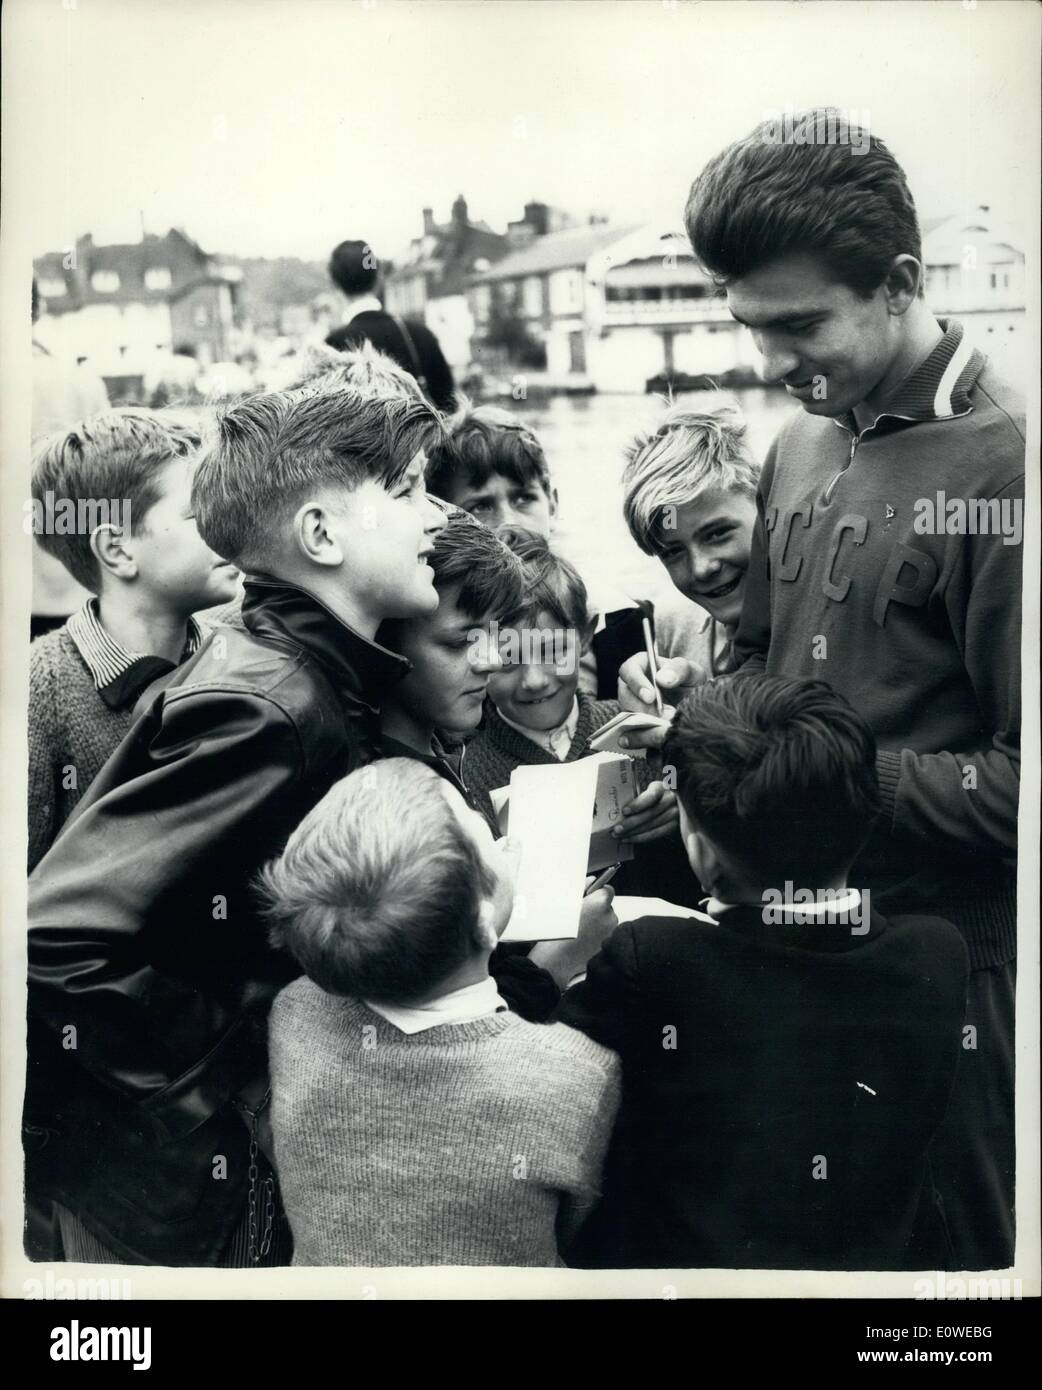 Jul. 07, 1962 - Muscovites on the Thames Henley Royal Regatta: Photo Shows Boris Dubrovsky of the Central Army Sports Club, Moscow, signs autograph albums at the Royal Regatta, Hanley, today. He is participating in the Diamond Sculls. - Stock Image